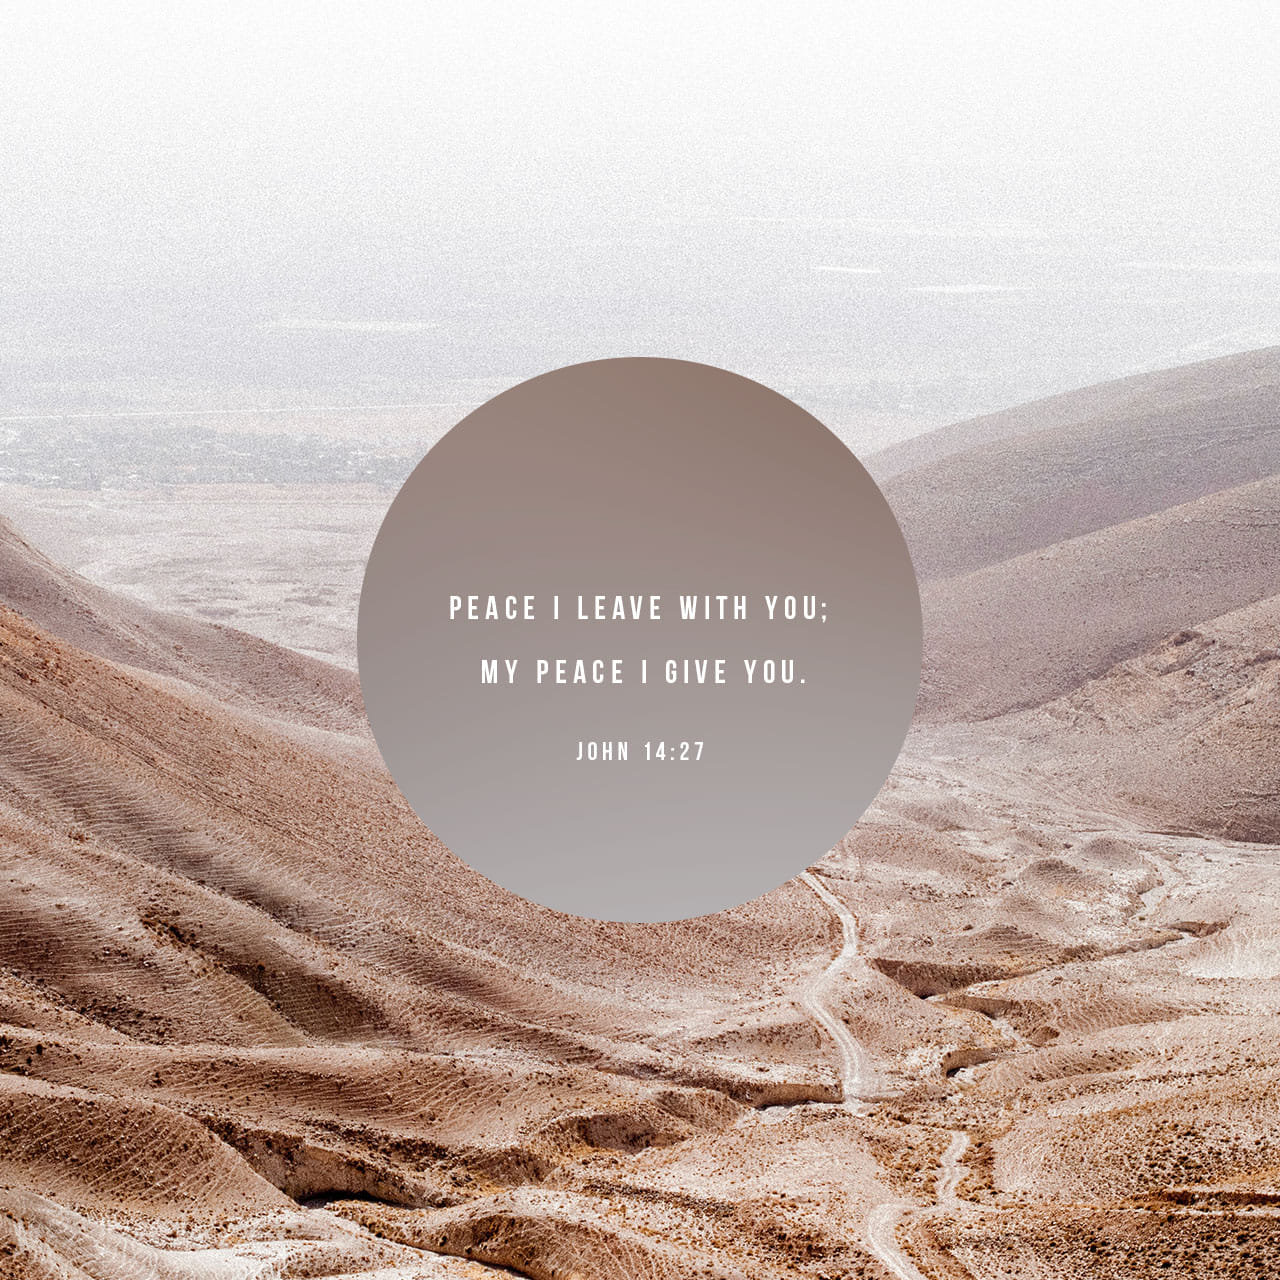 Peace I leave with you; my peace I give you. - John 14:27 - Verse Image